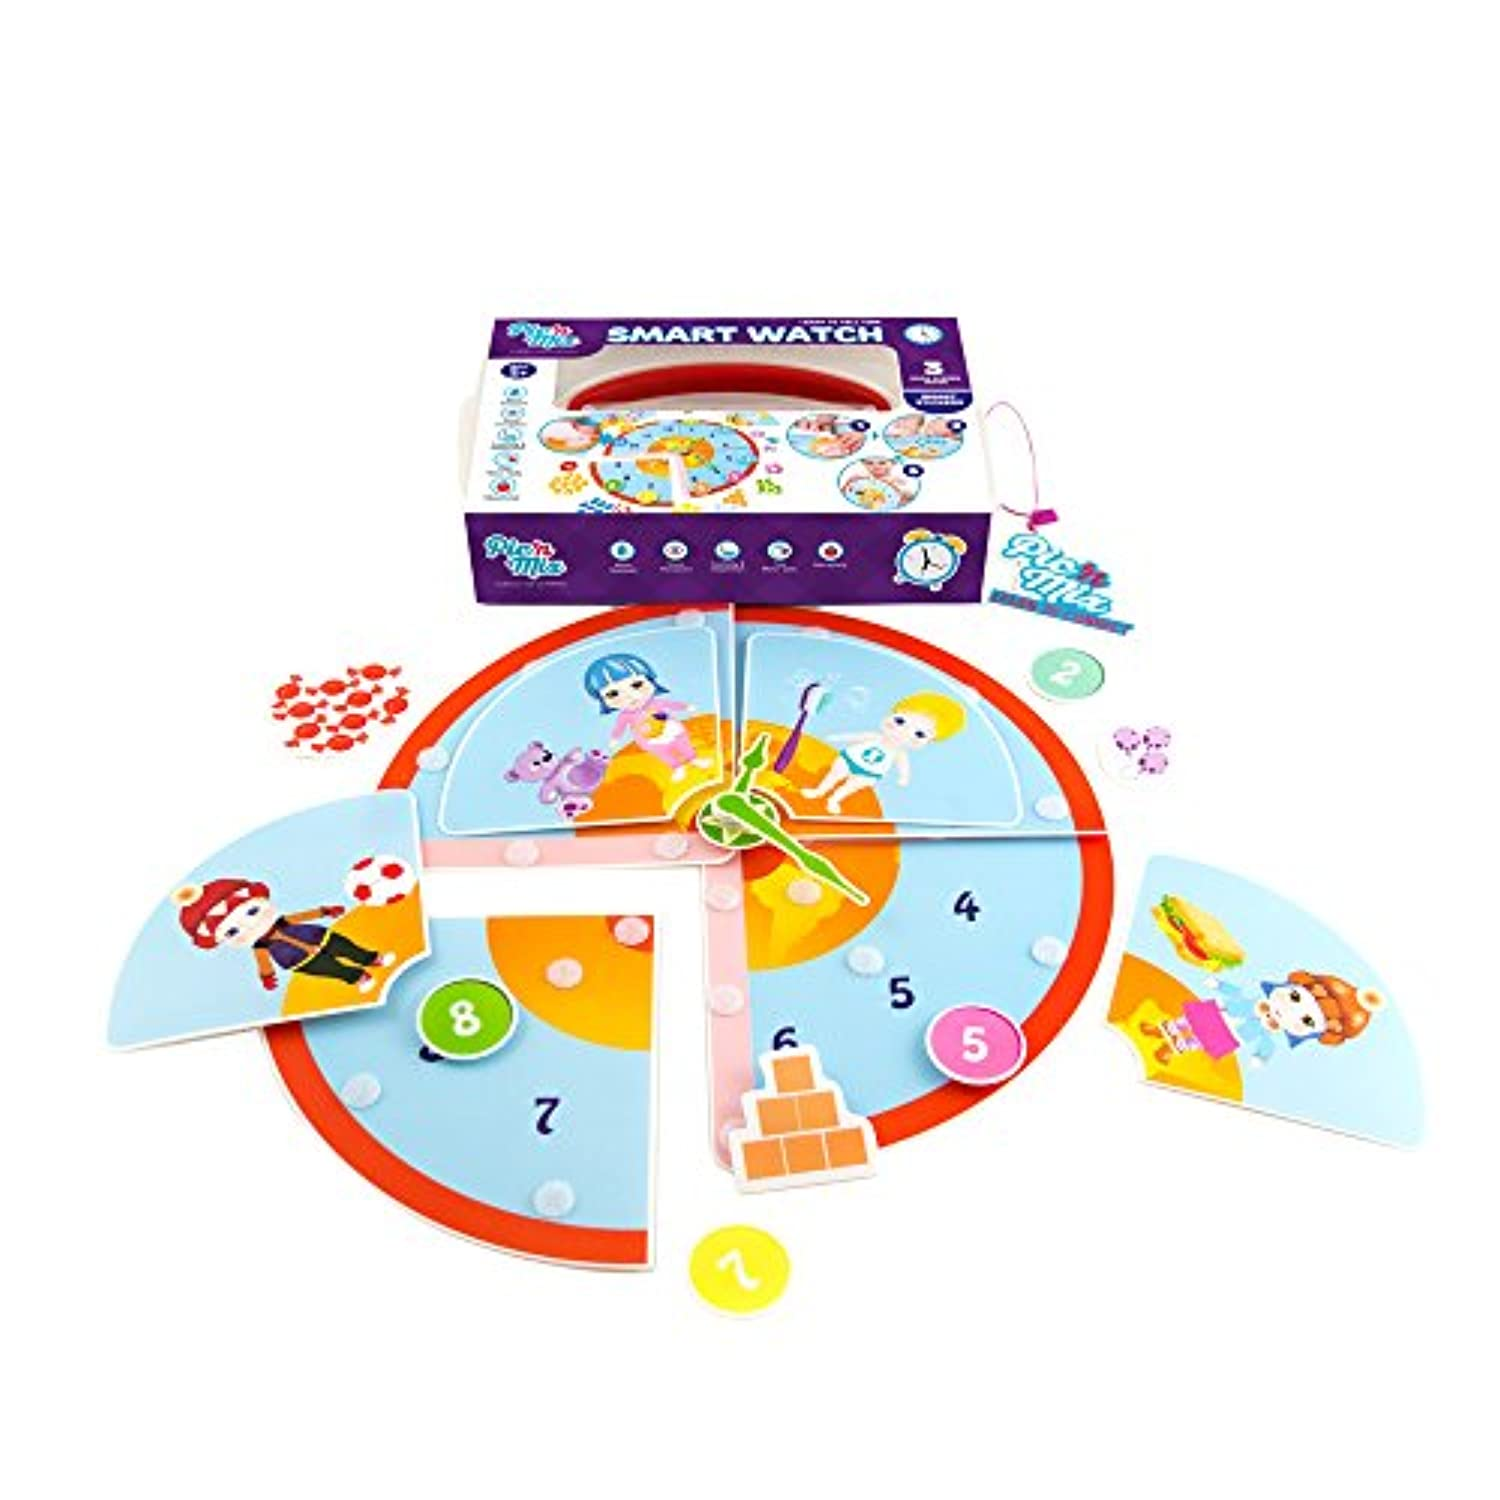 (Smart Watch) - Roll over image to zoom in Picnmix Smart Watch Educational and Learning Toys and Games for 3 year olds to 7 year olds